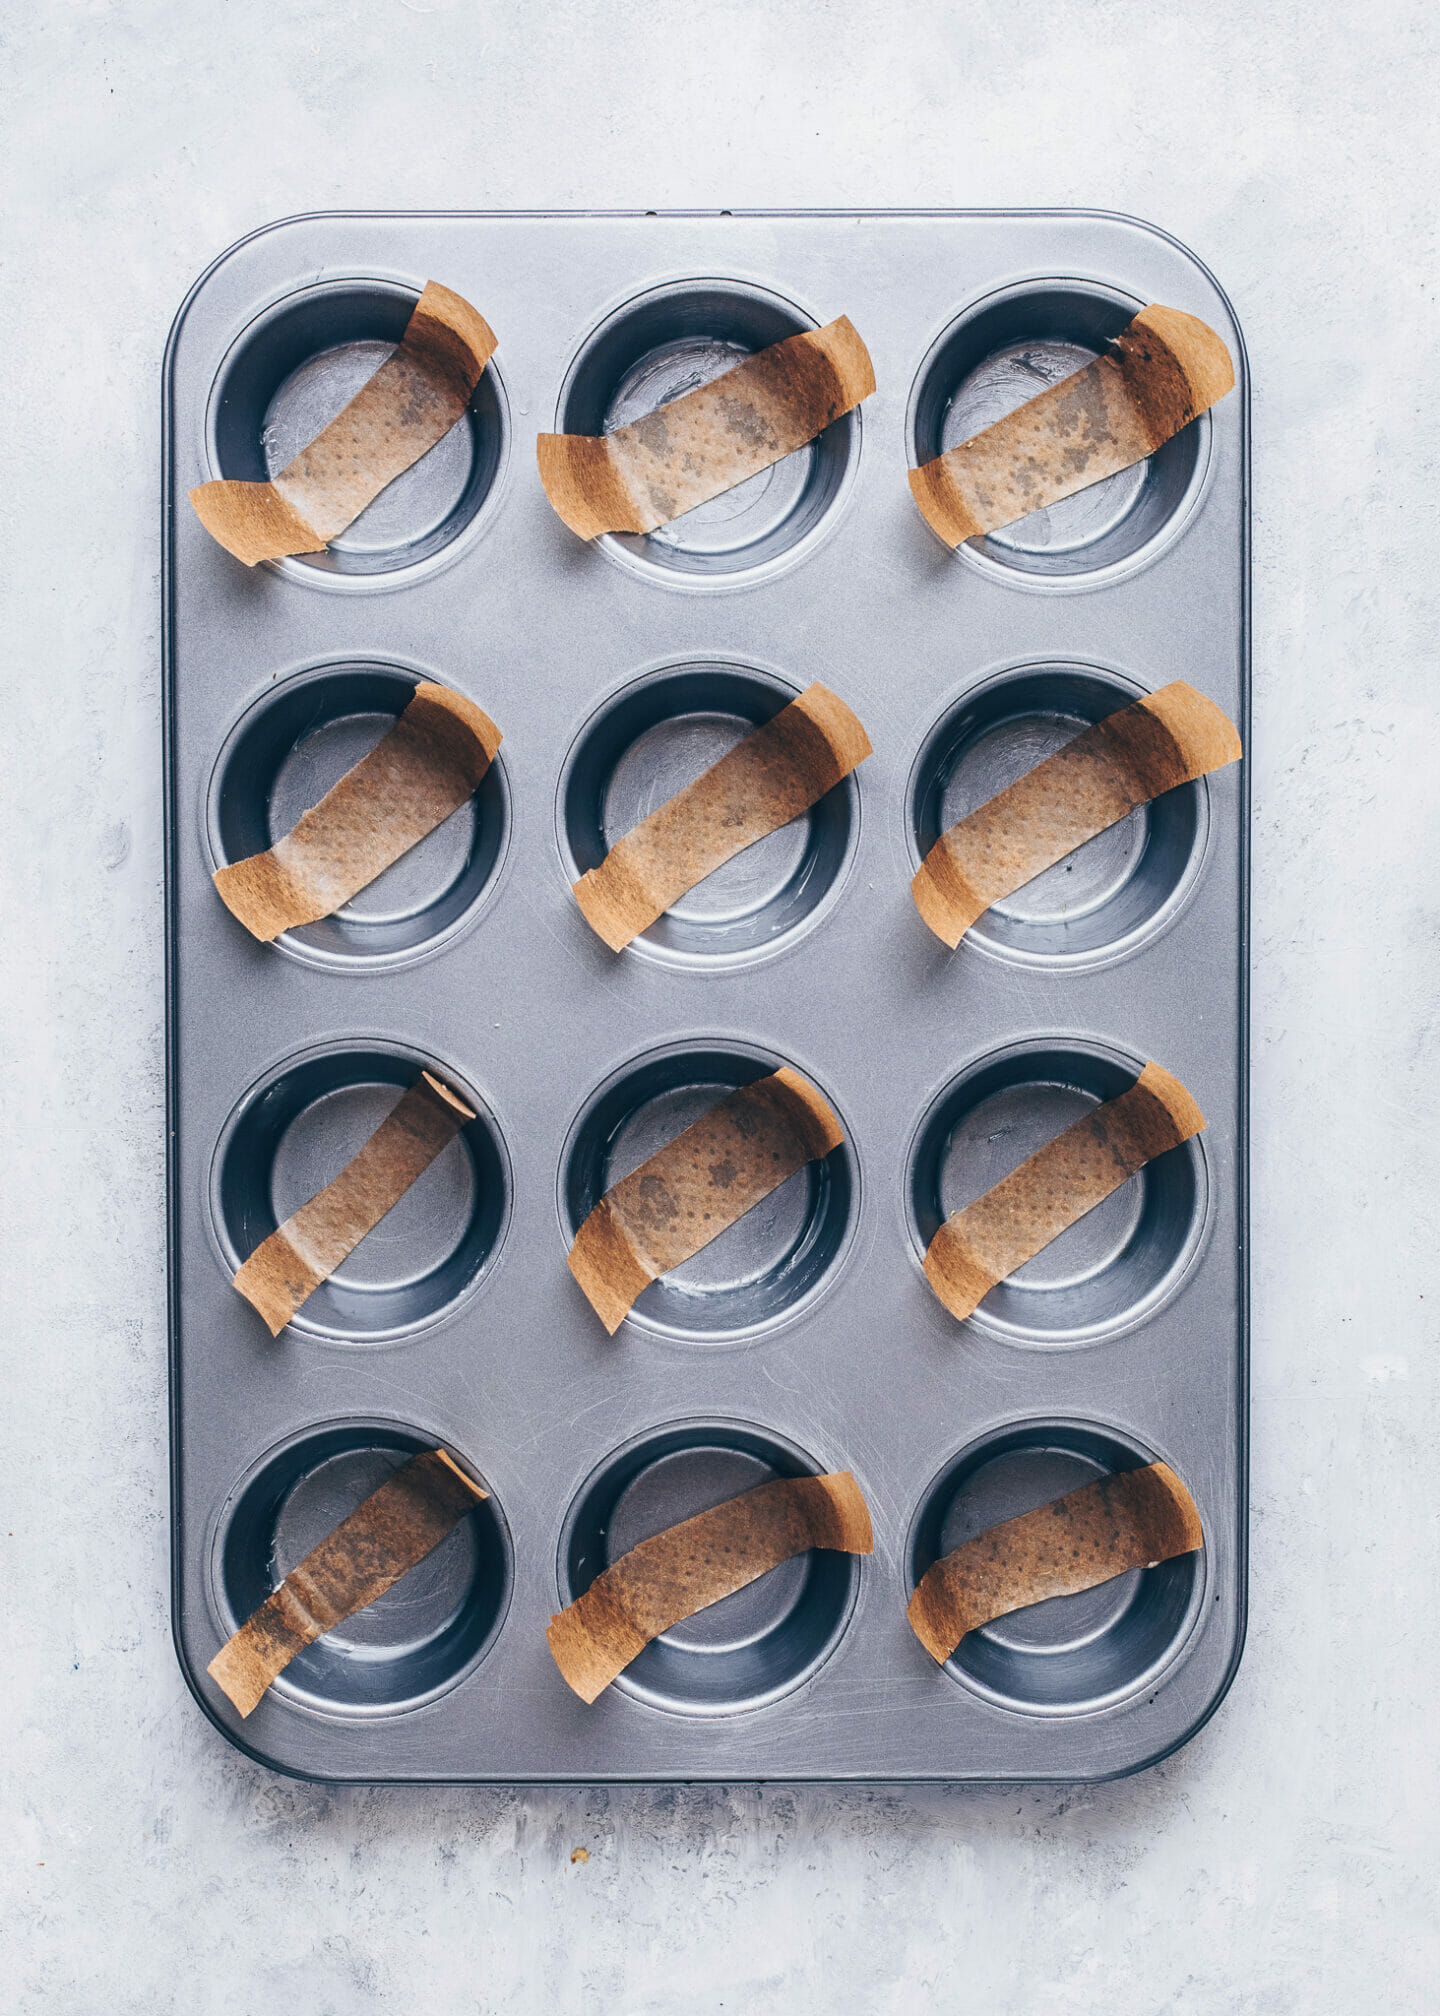 muffin tins lined with parchment paper strips